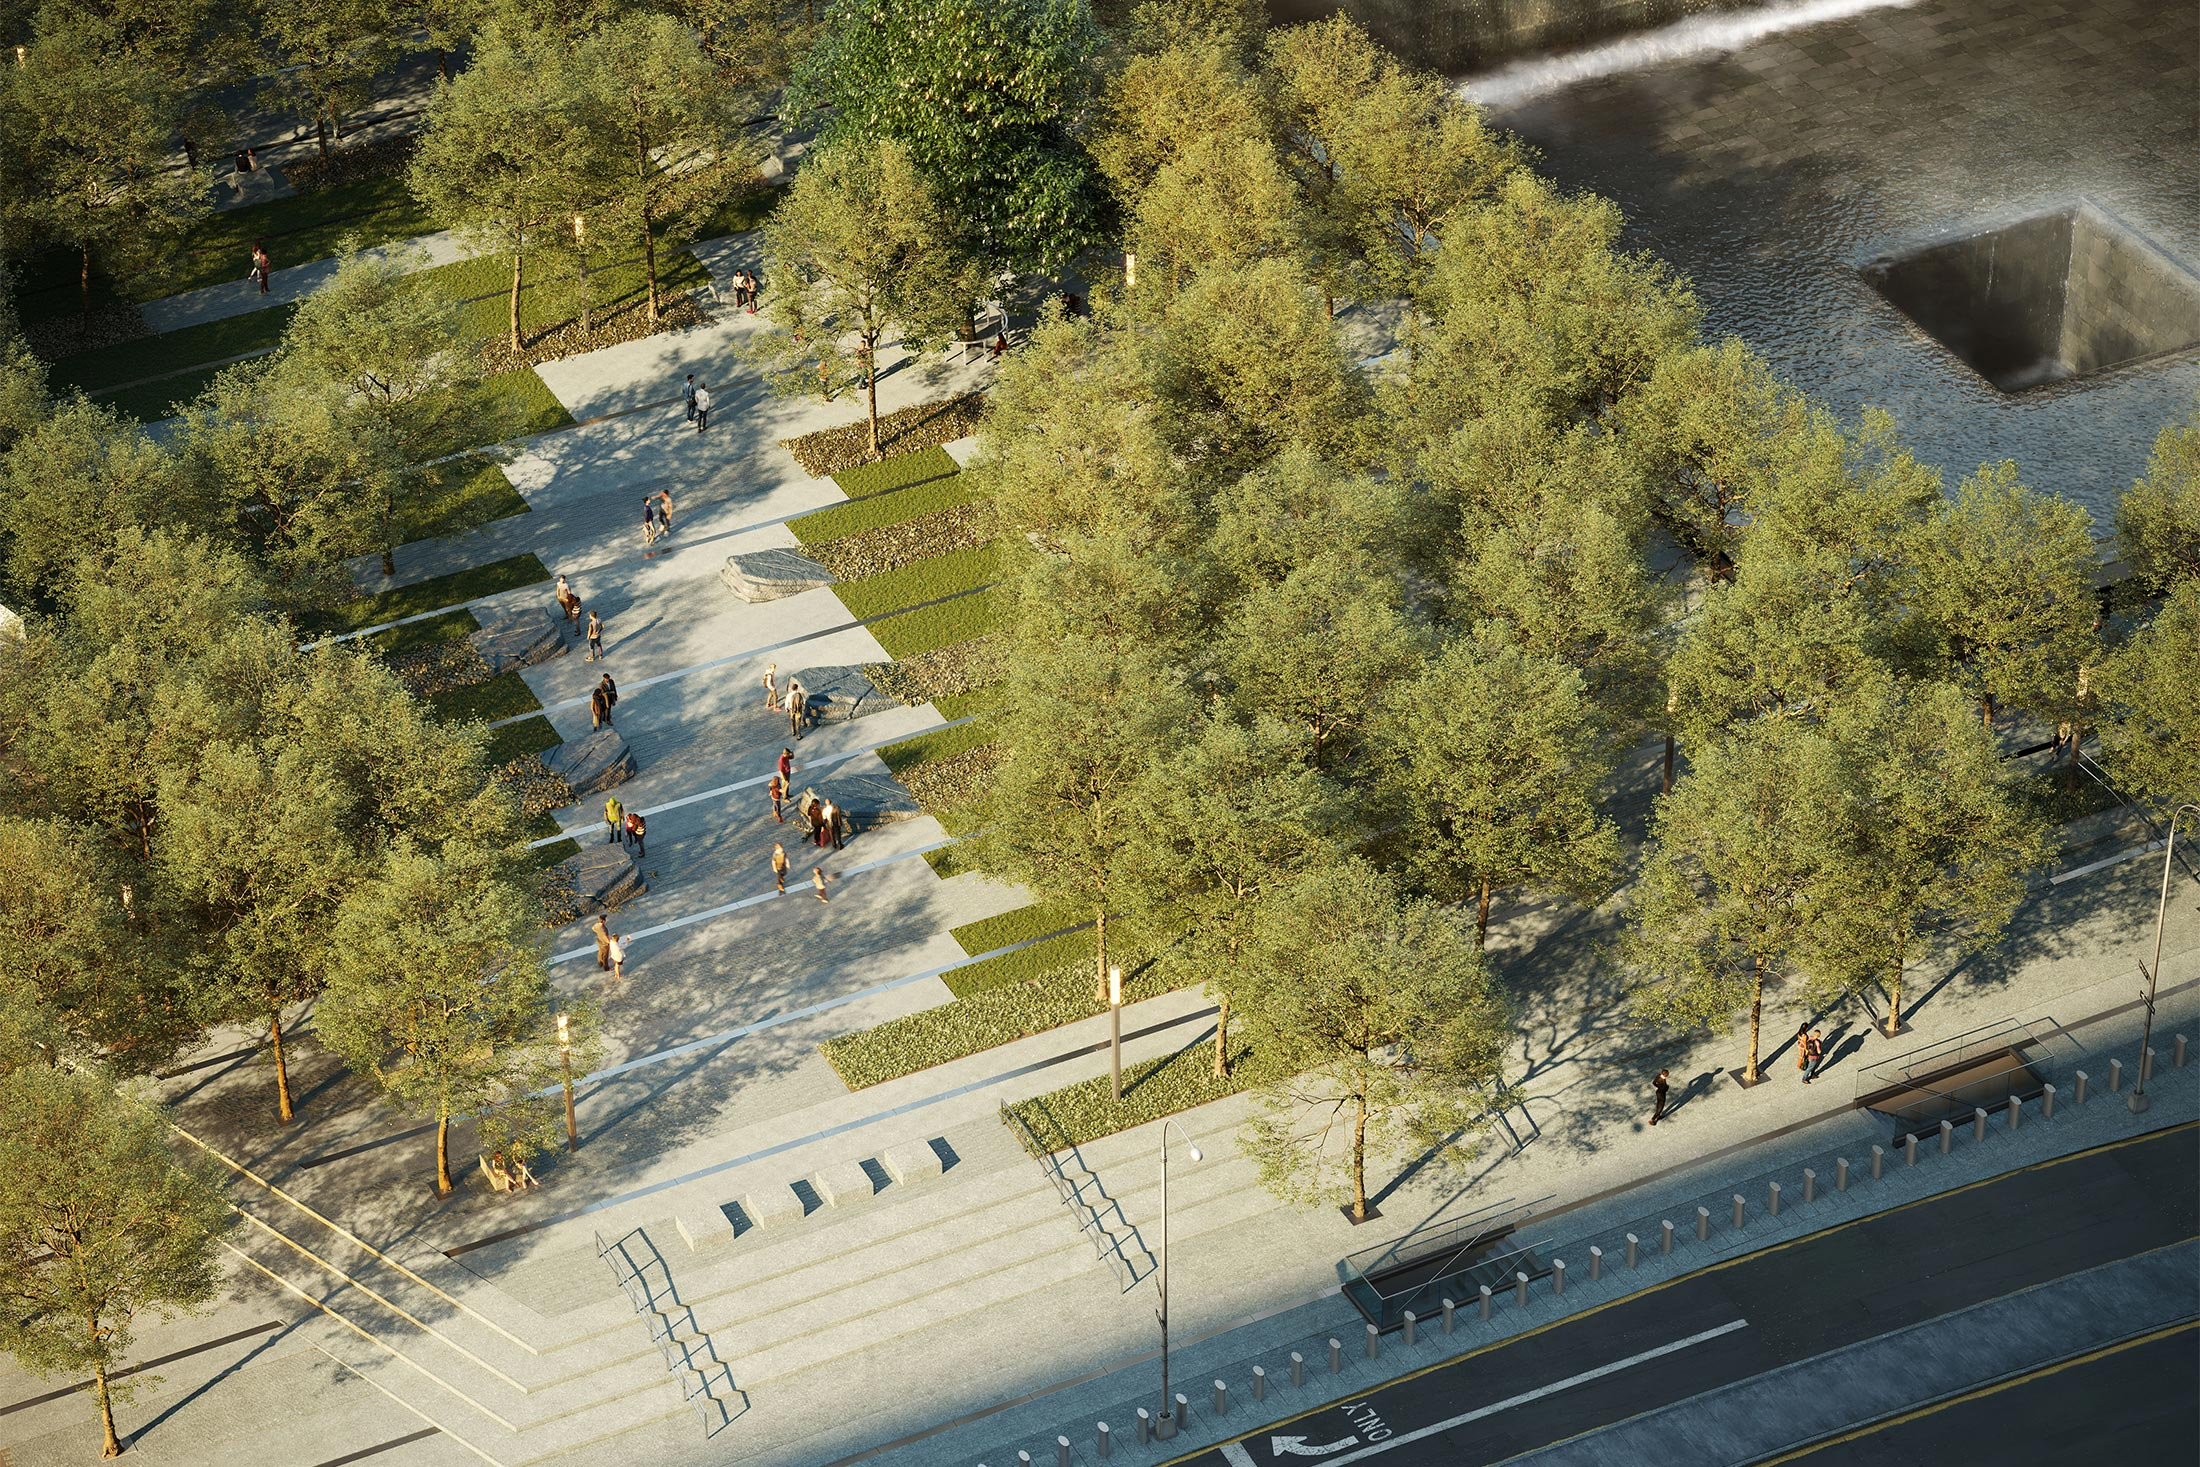 Architectural Rendering of an aerial view of the World Trade Center 9/11 Memorial Glade project located in the Financial District, New York City